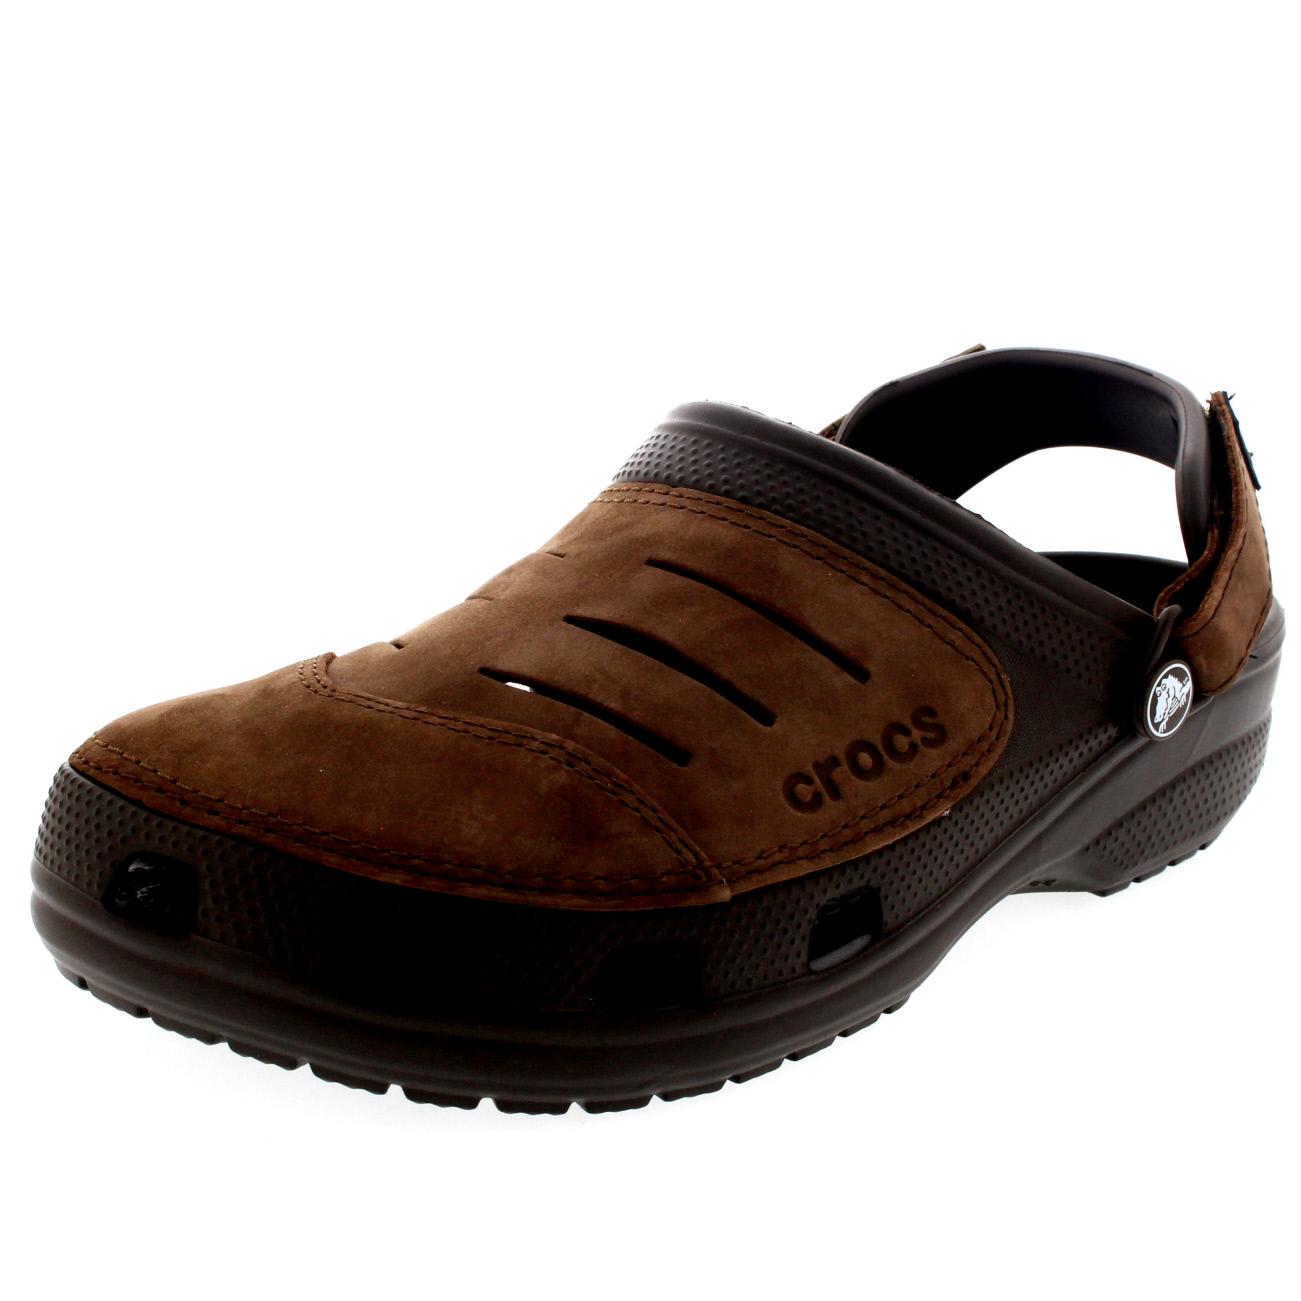 Deals on Crocs Mens Clogs! Shop a variety of discounted Crocs Clogs for Men. Save on the best trends at unbeatable prices. Plus, enjoy FREE SHIPPING & Exchanges!